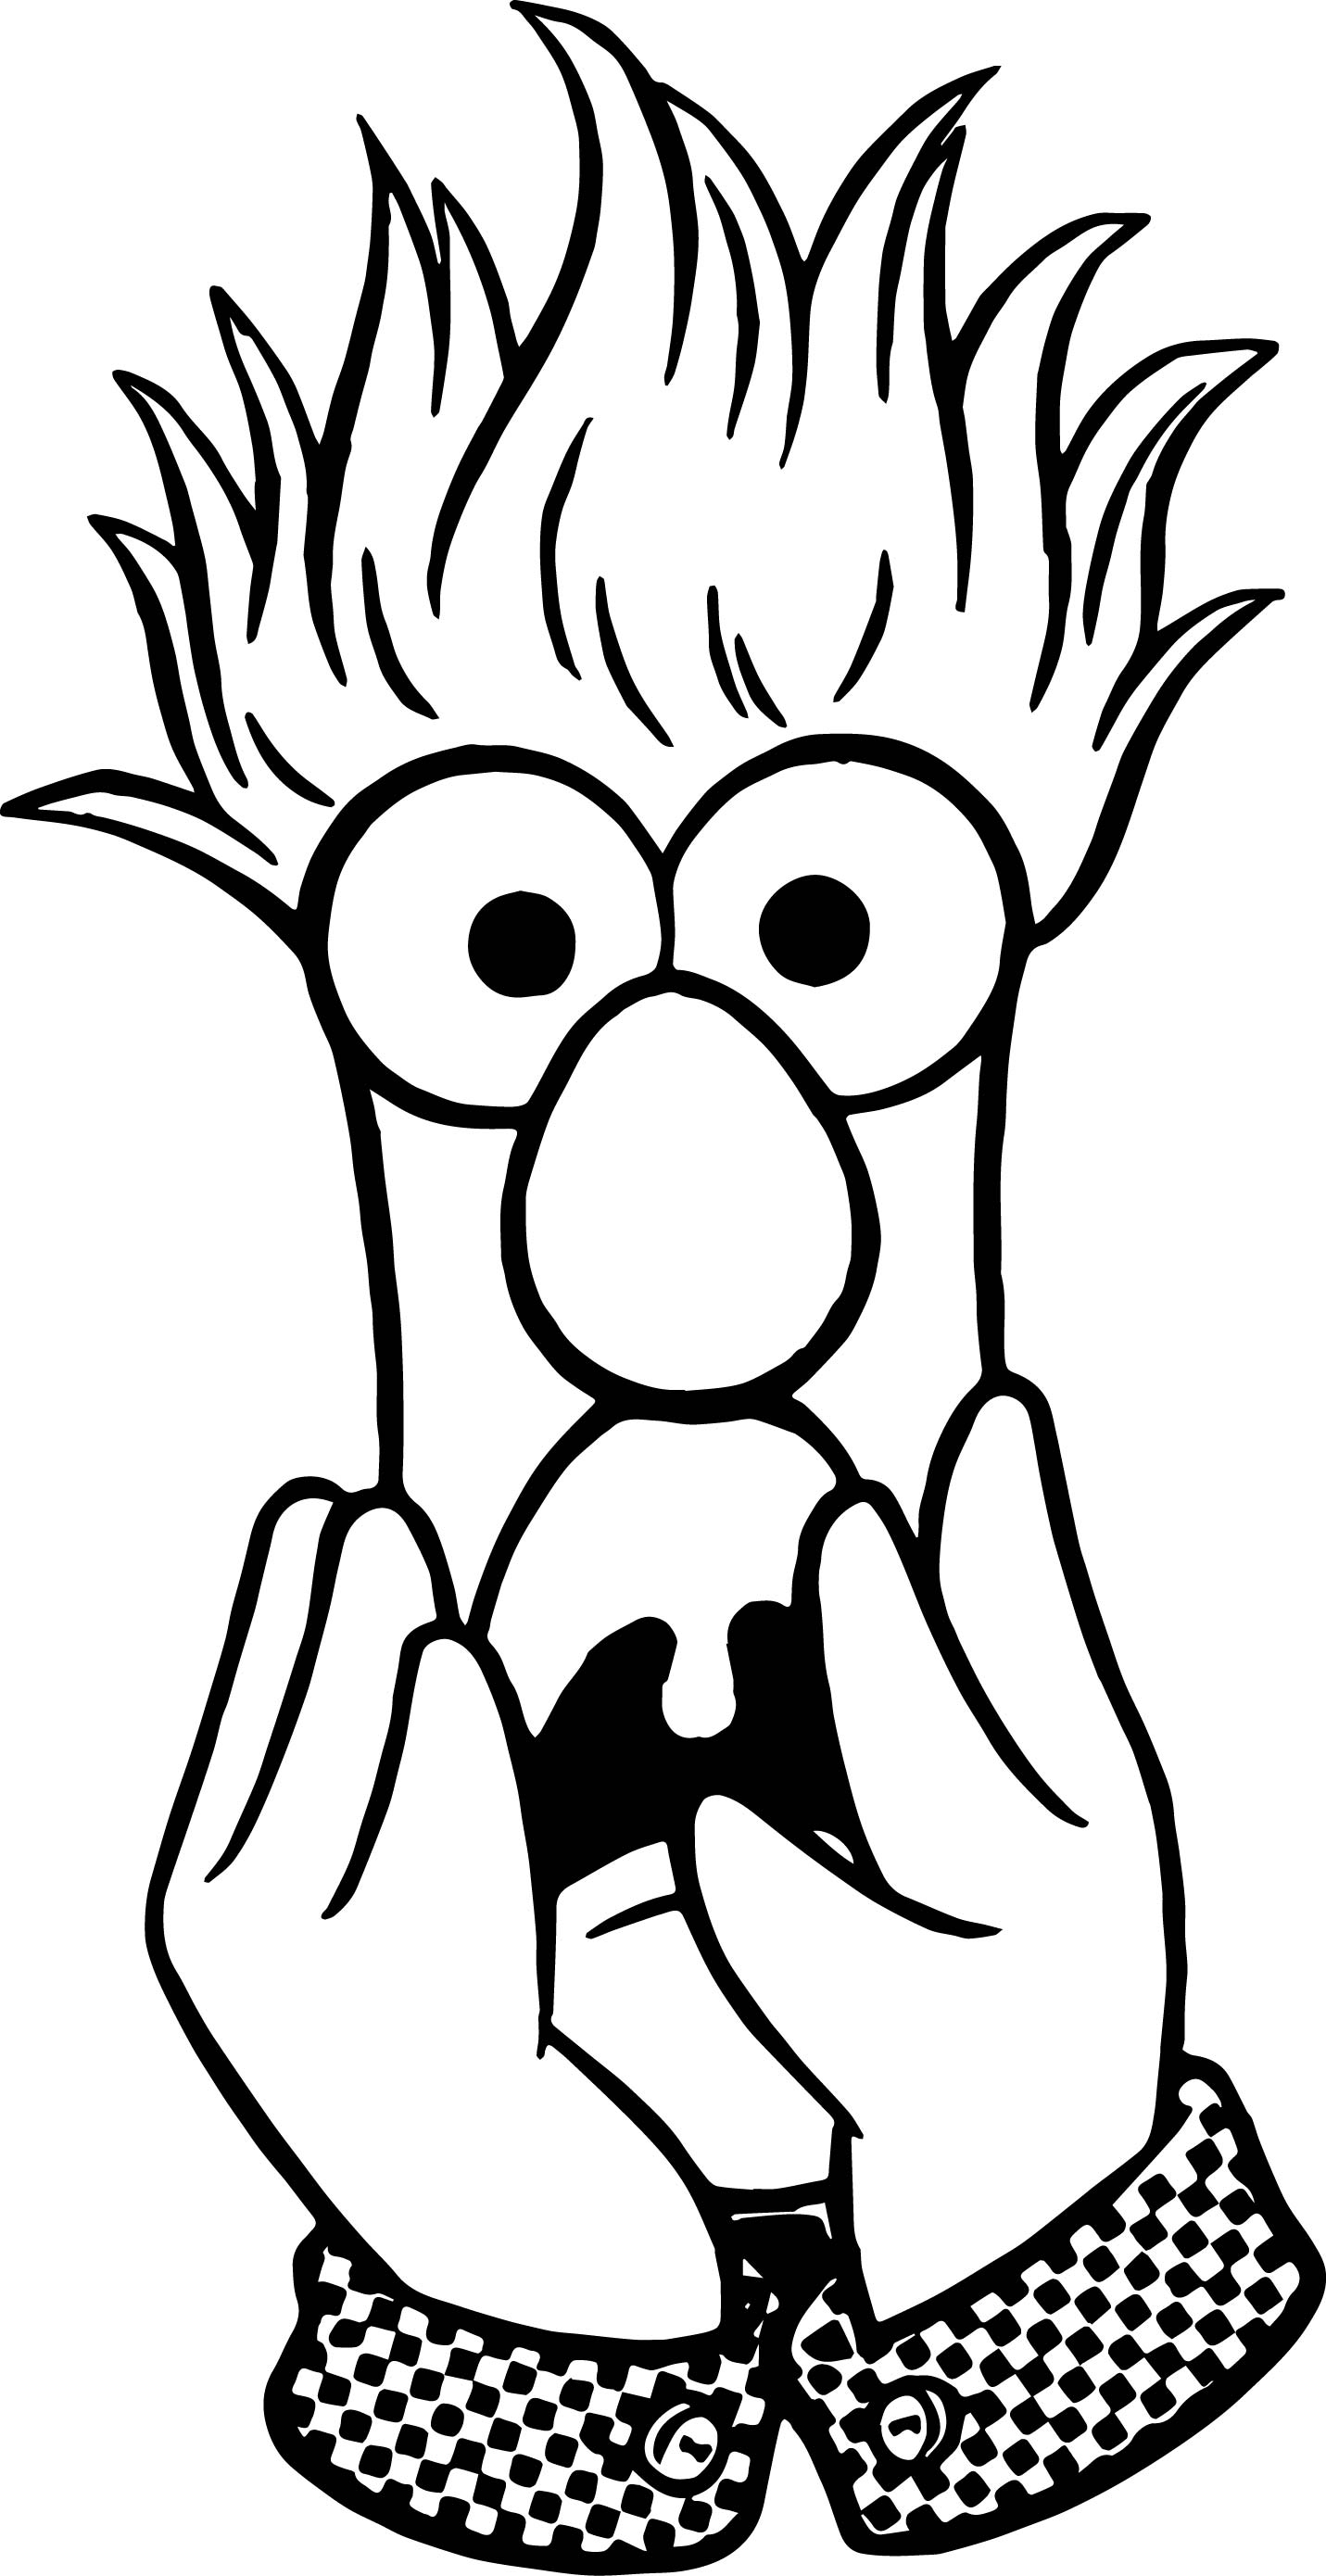 The Muppets Muppets Beaker Fear Coloring Pages  Wecoloringpage